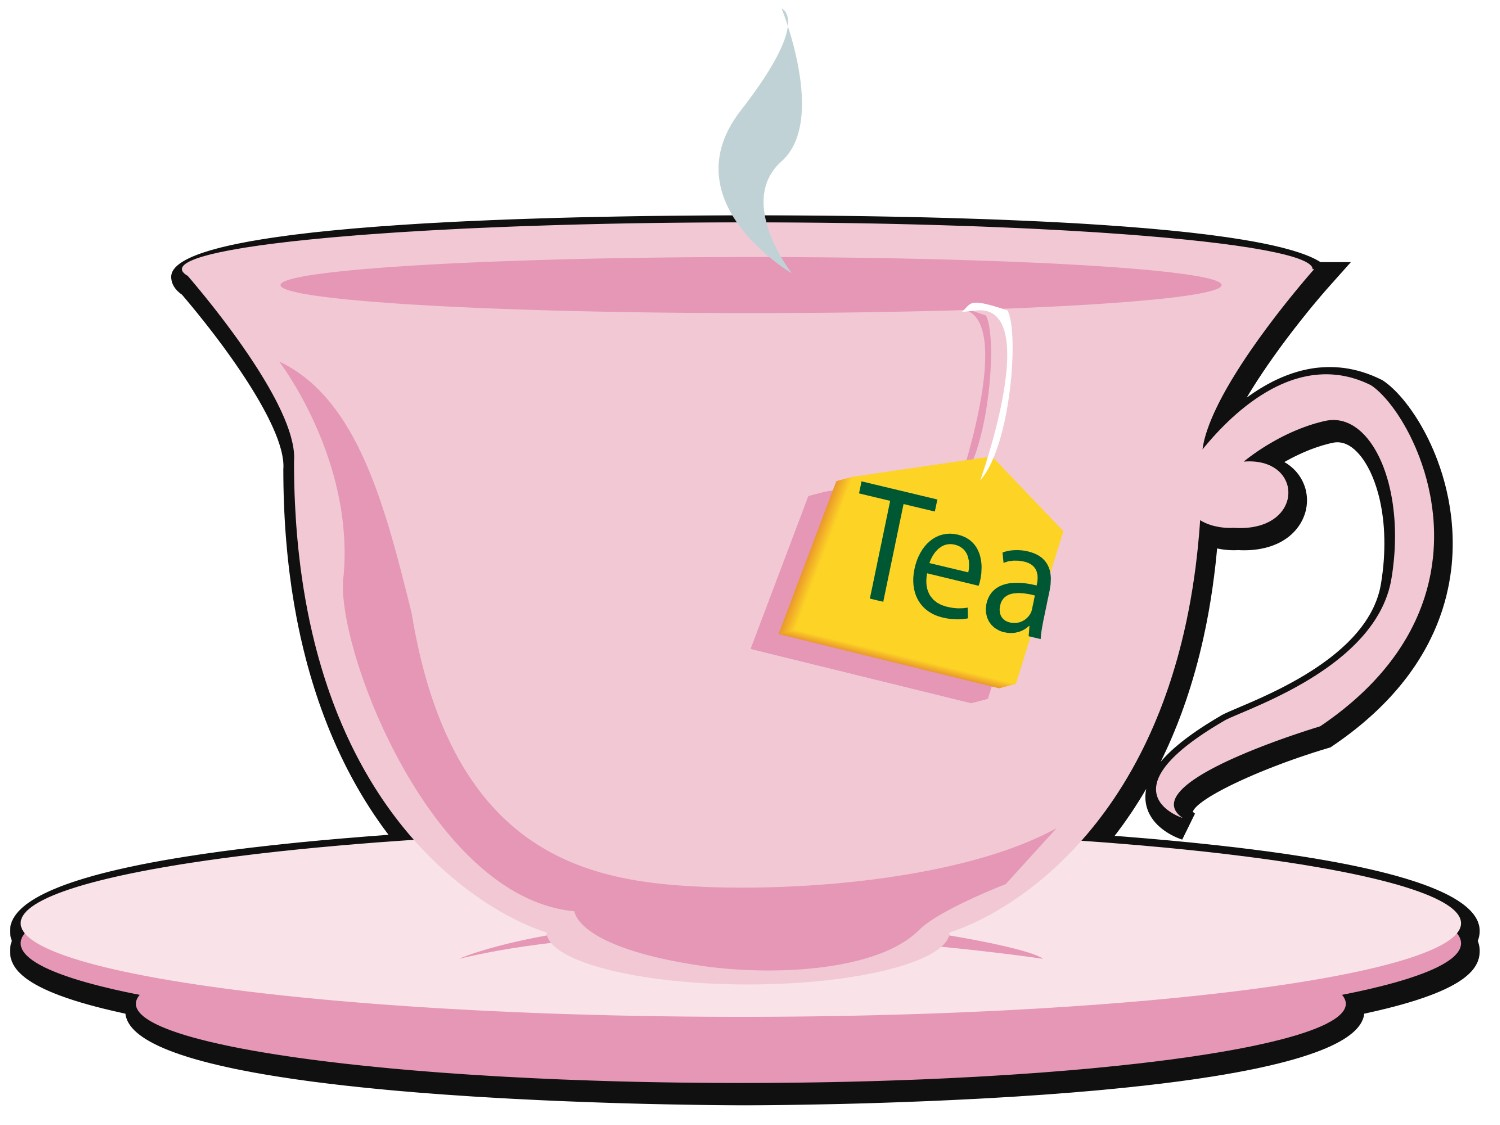 Intolerable acts clipart cup tea. Index